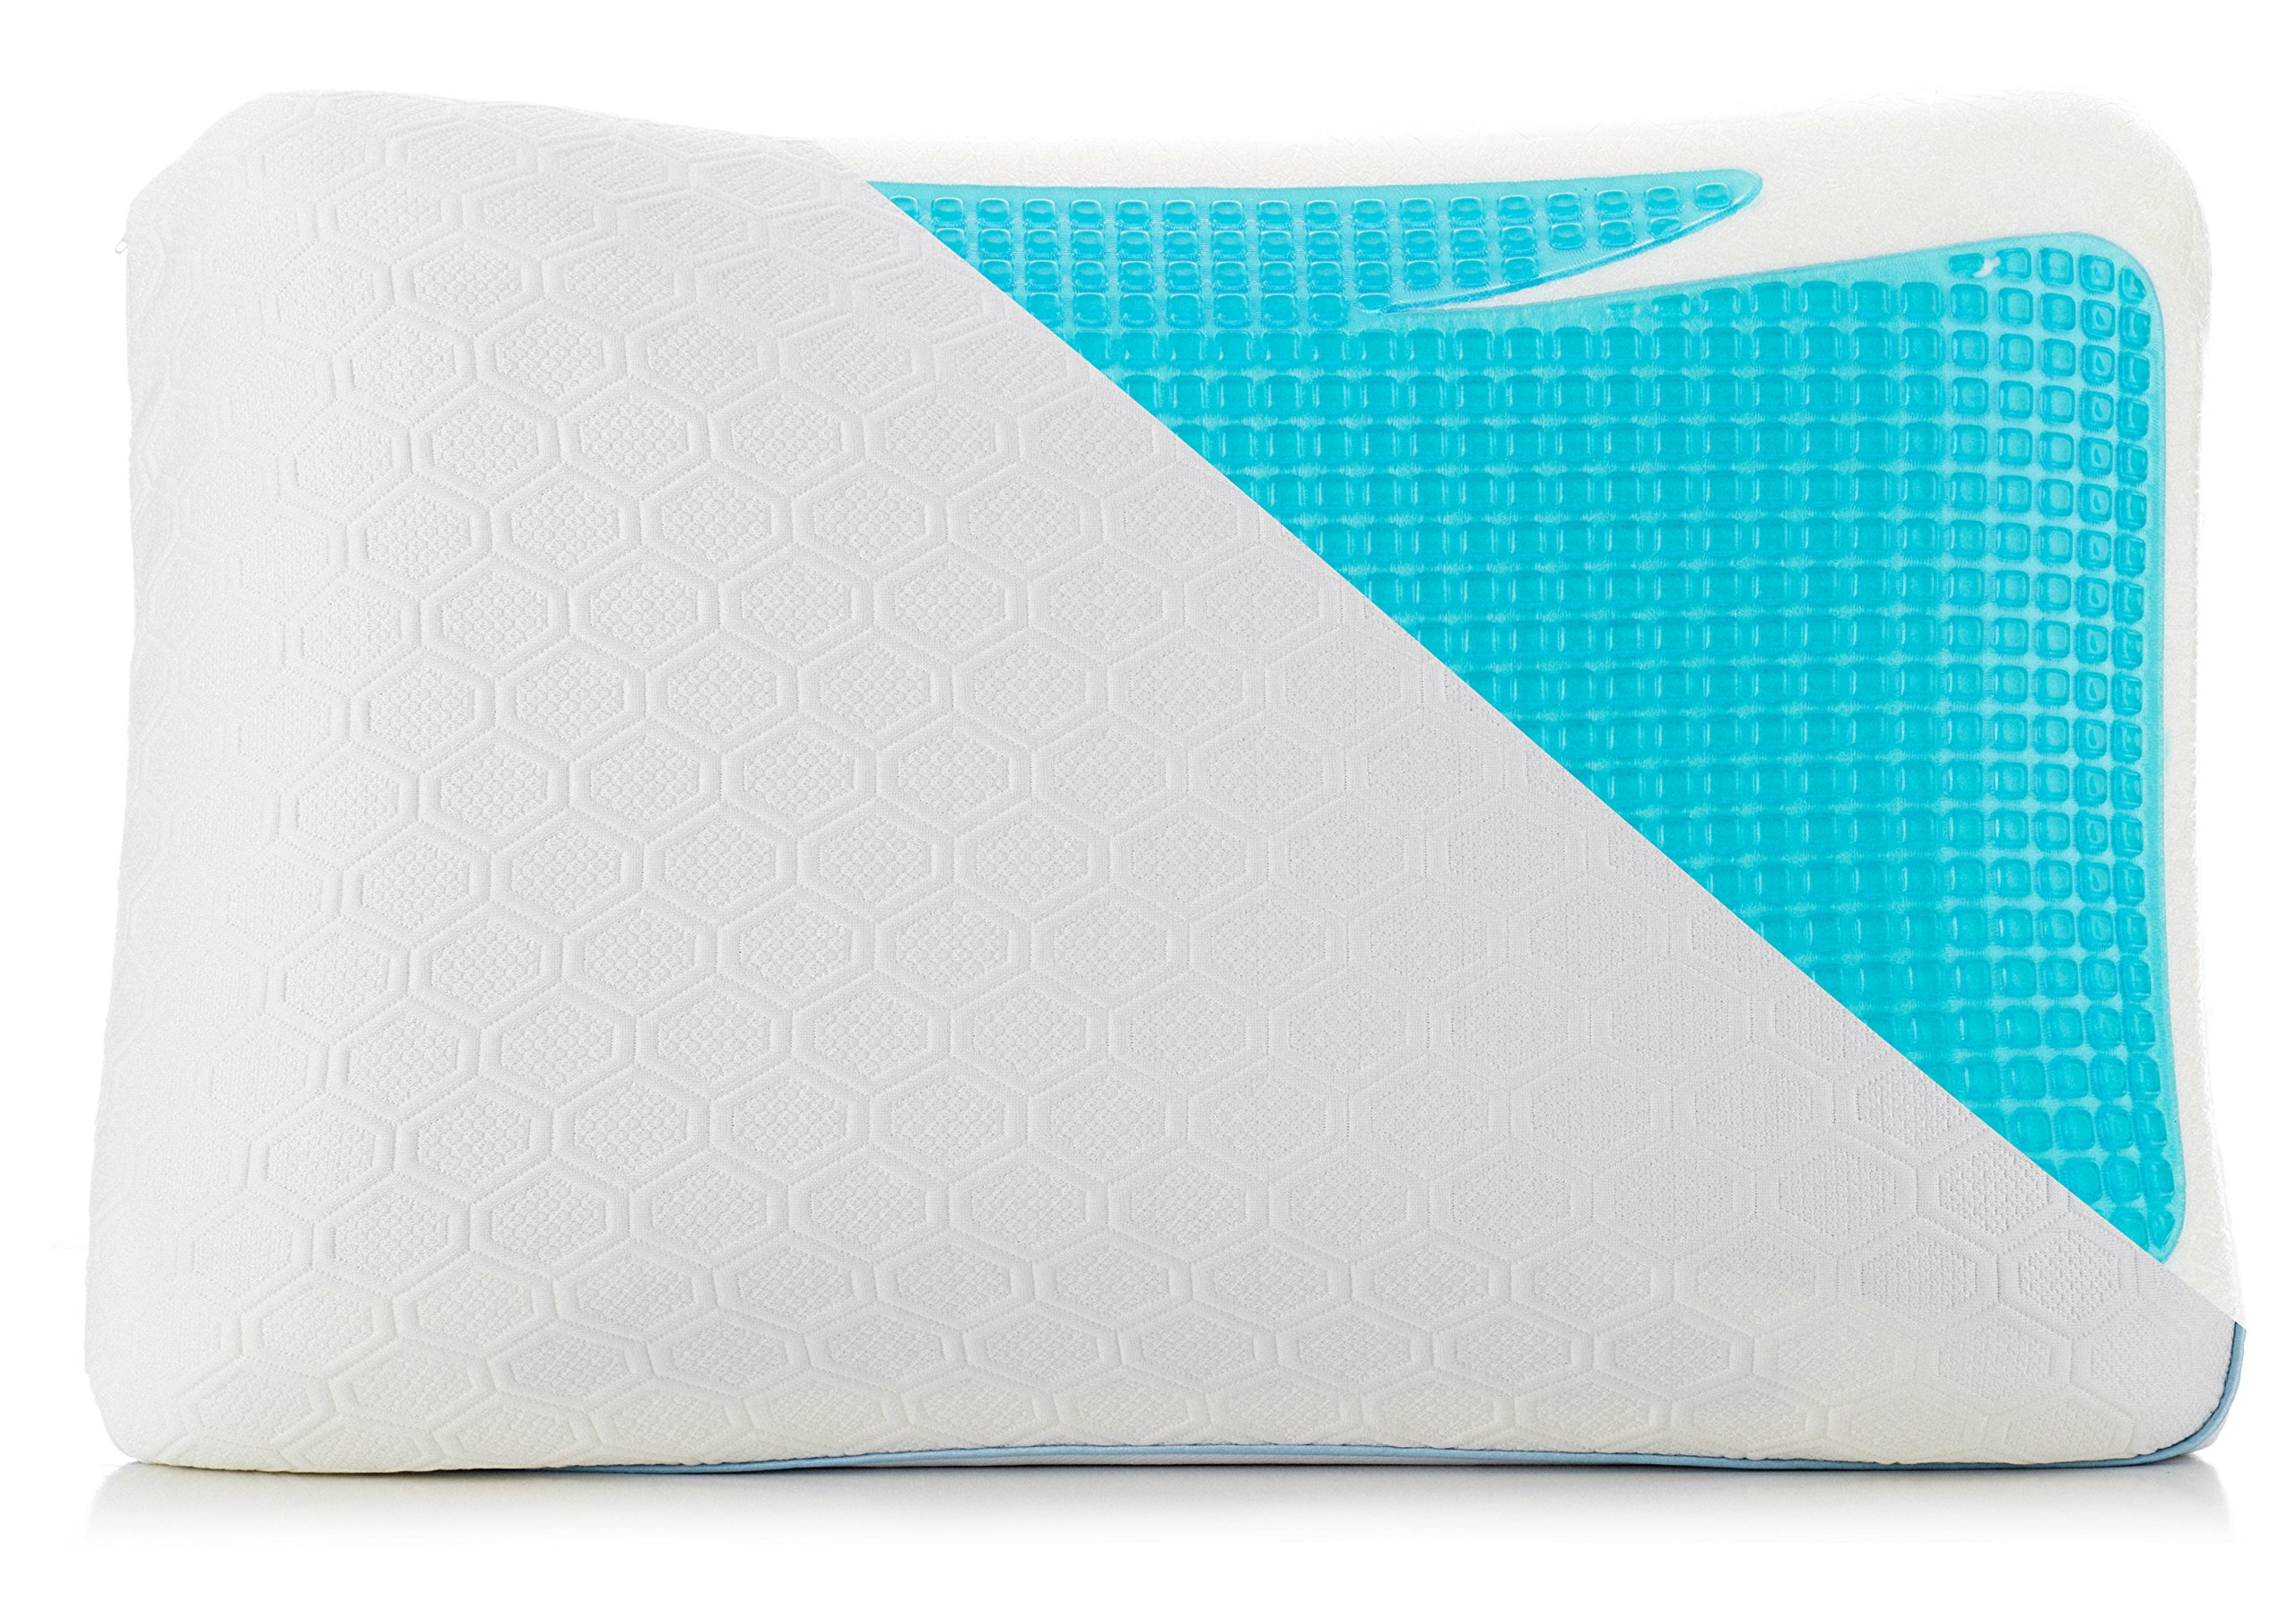 maxcoolingpillow tempagel restonic latest unveils releases technologies international pillows max tex pillow bedding cooling soft htm